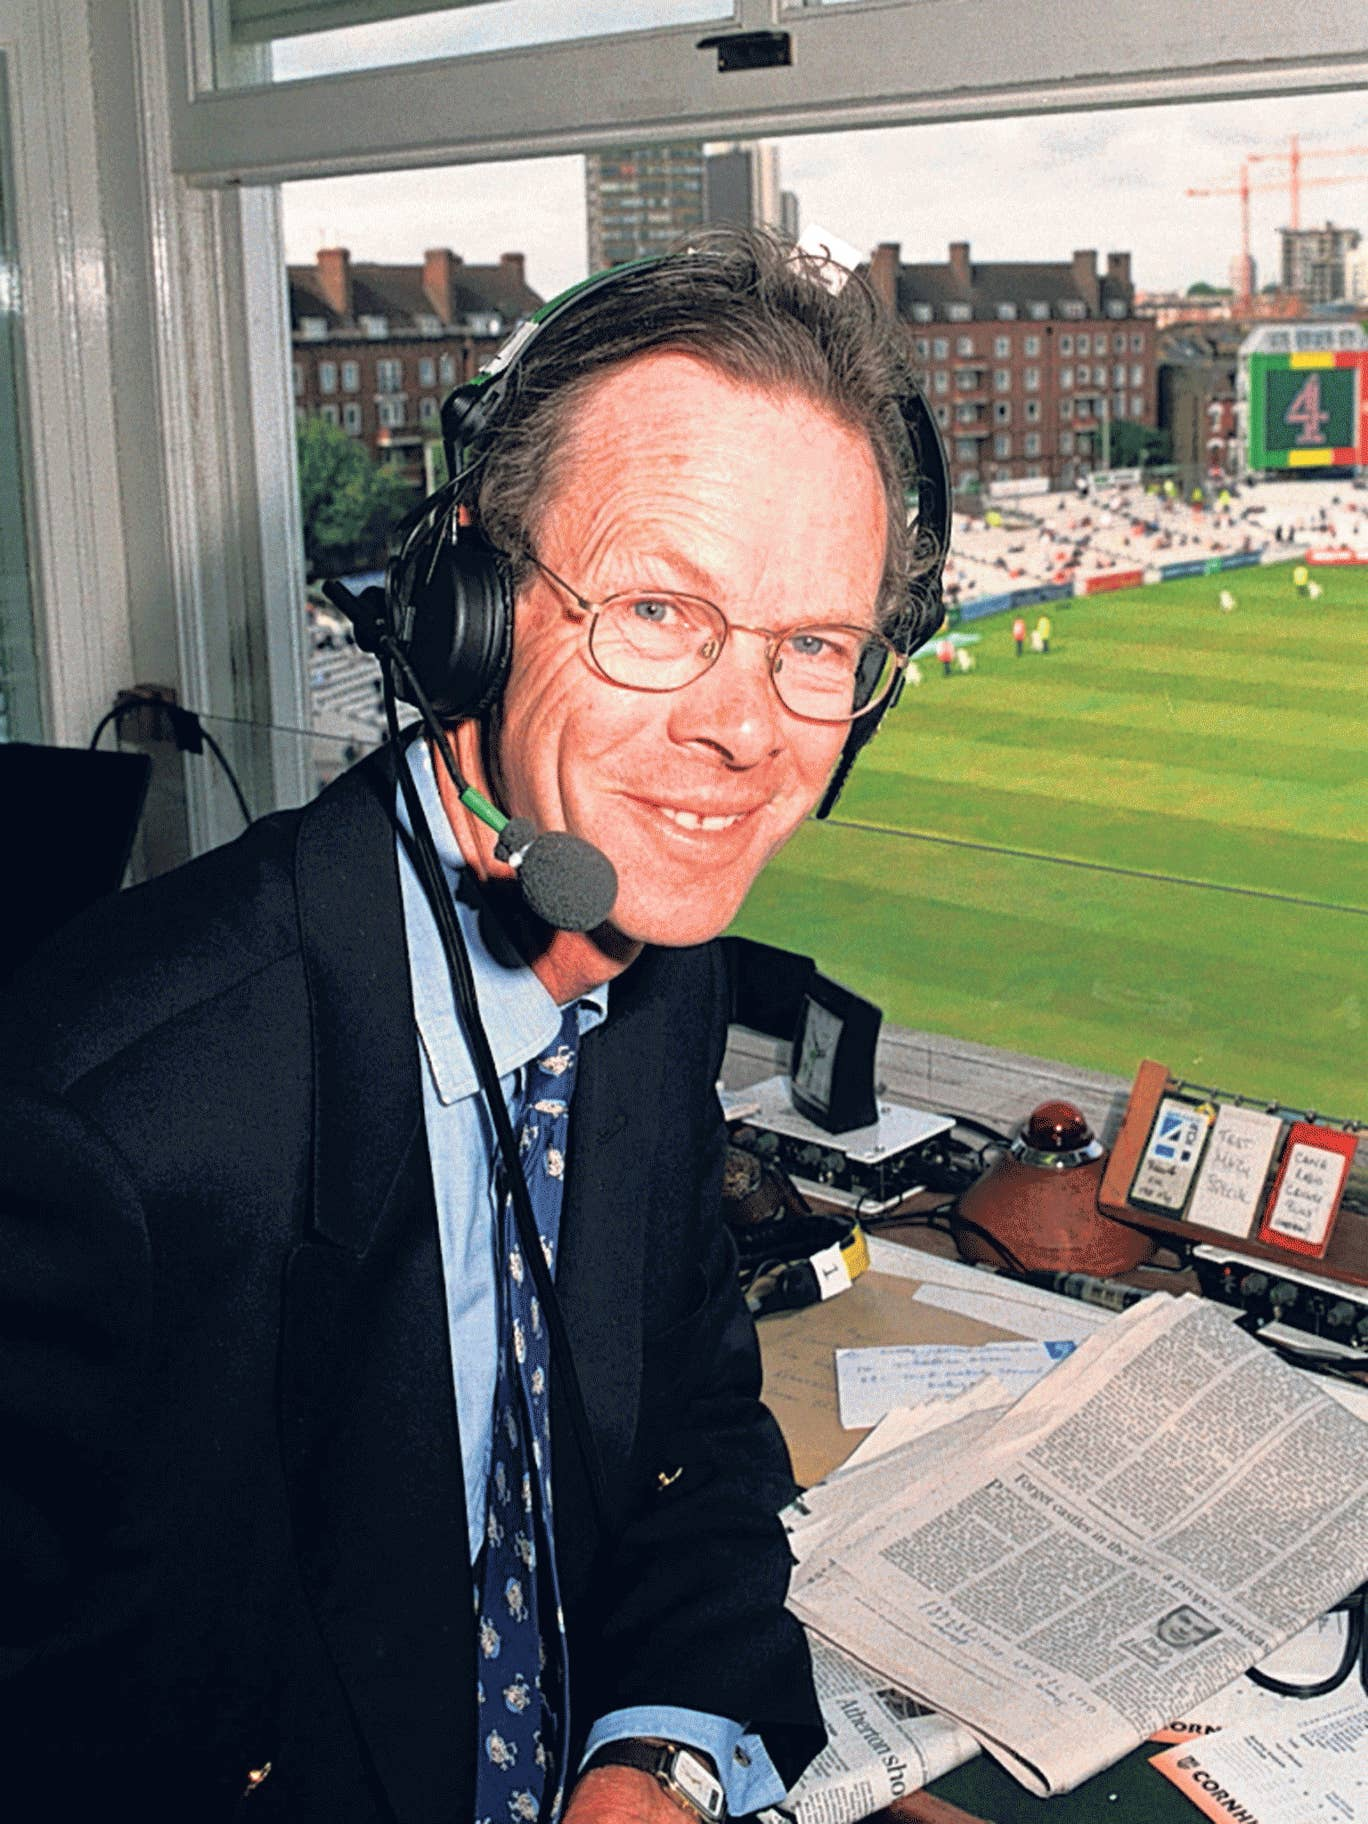 Martin-Jenkins was known as 'The Major' in the press box